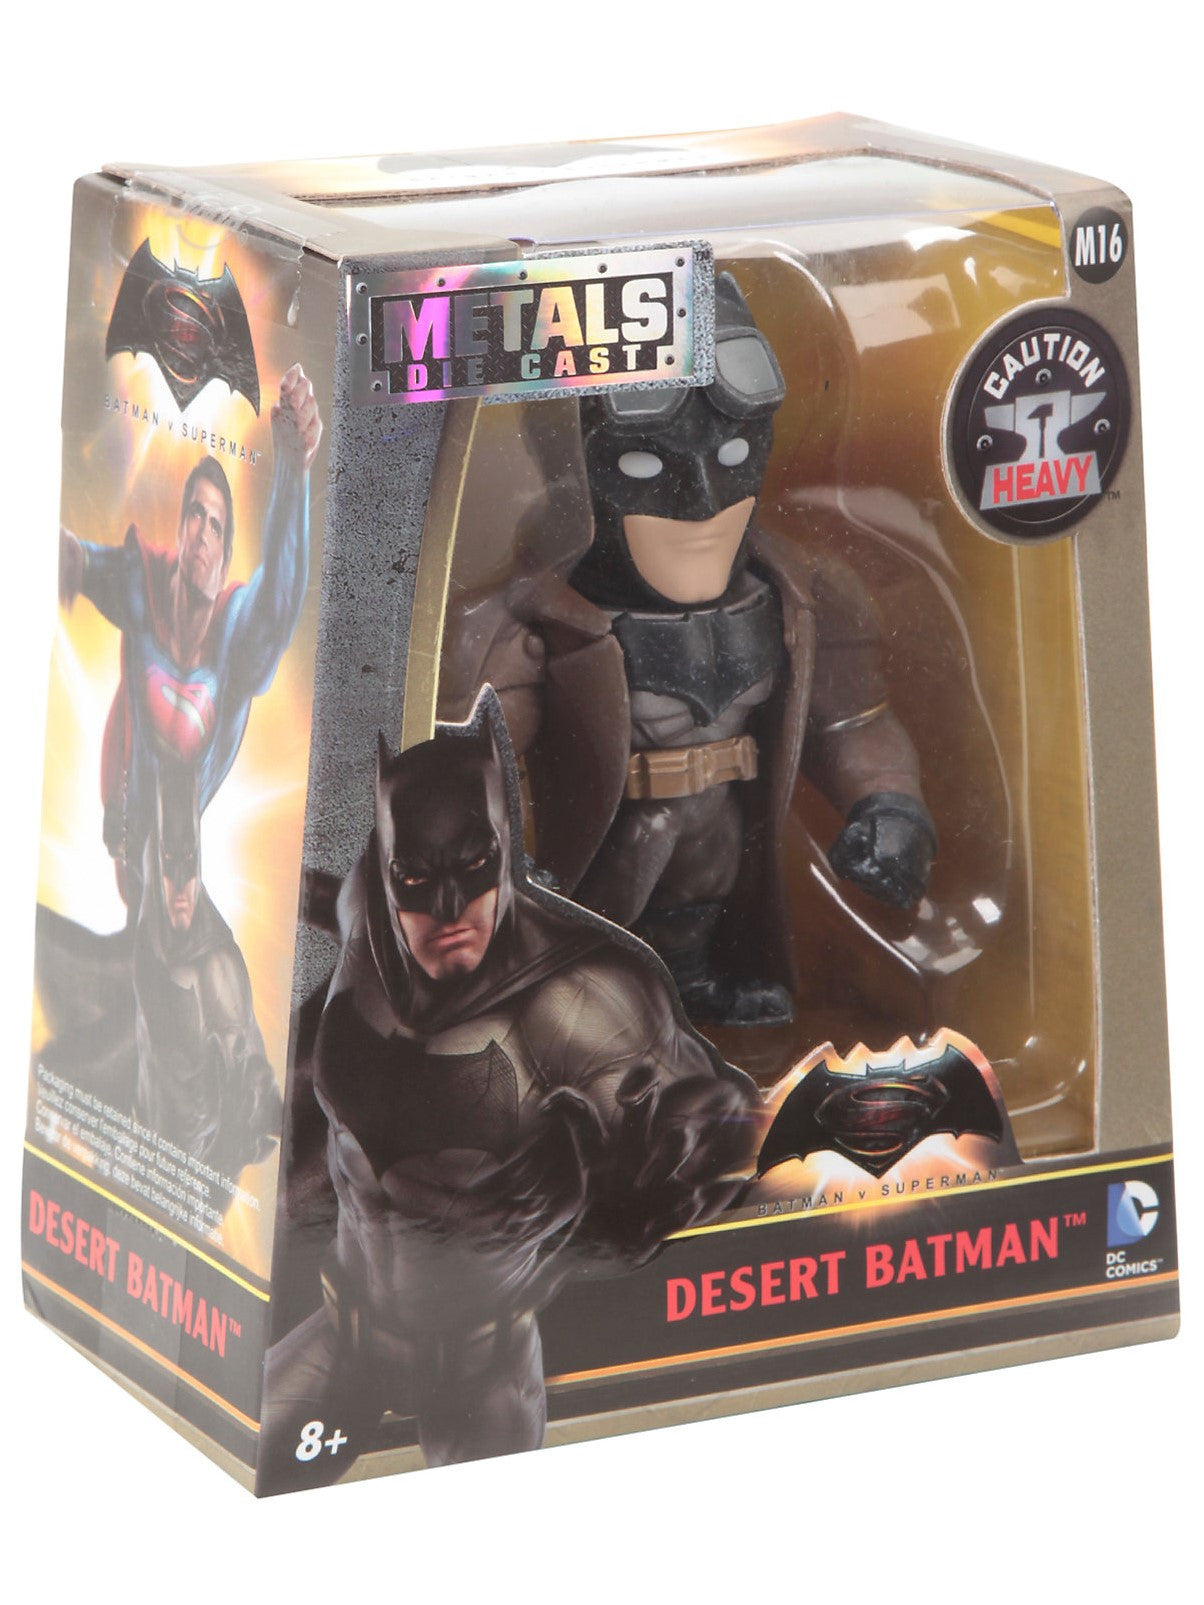 Metals Die Cast - DC - Batman v Superman - Desert Batman (M16) 4-Inch Metal Figure